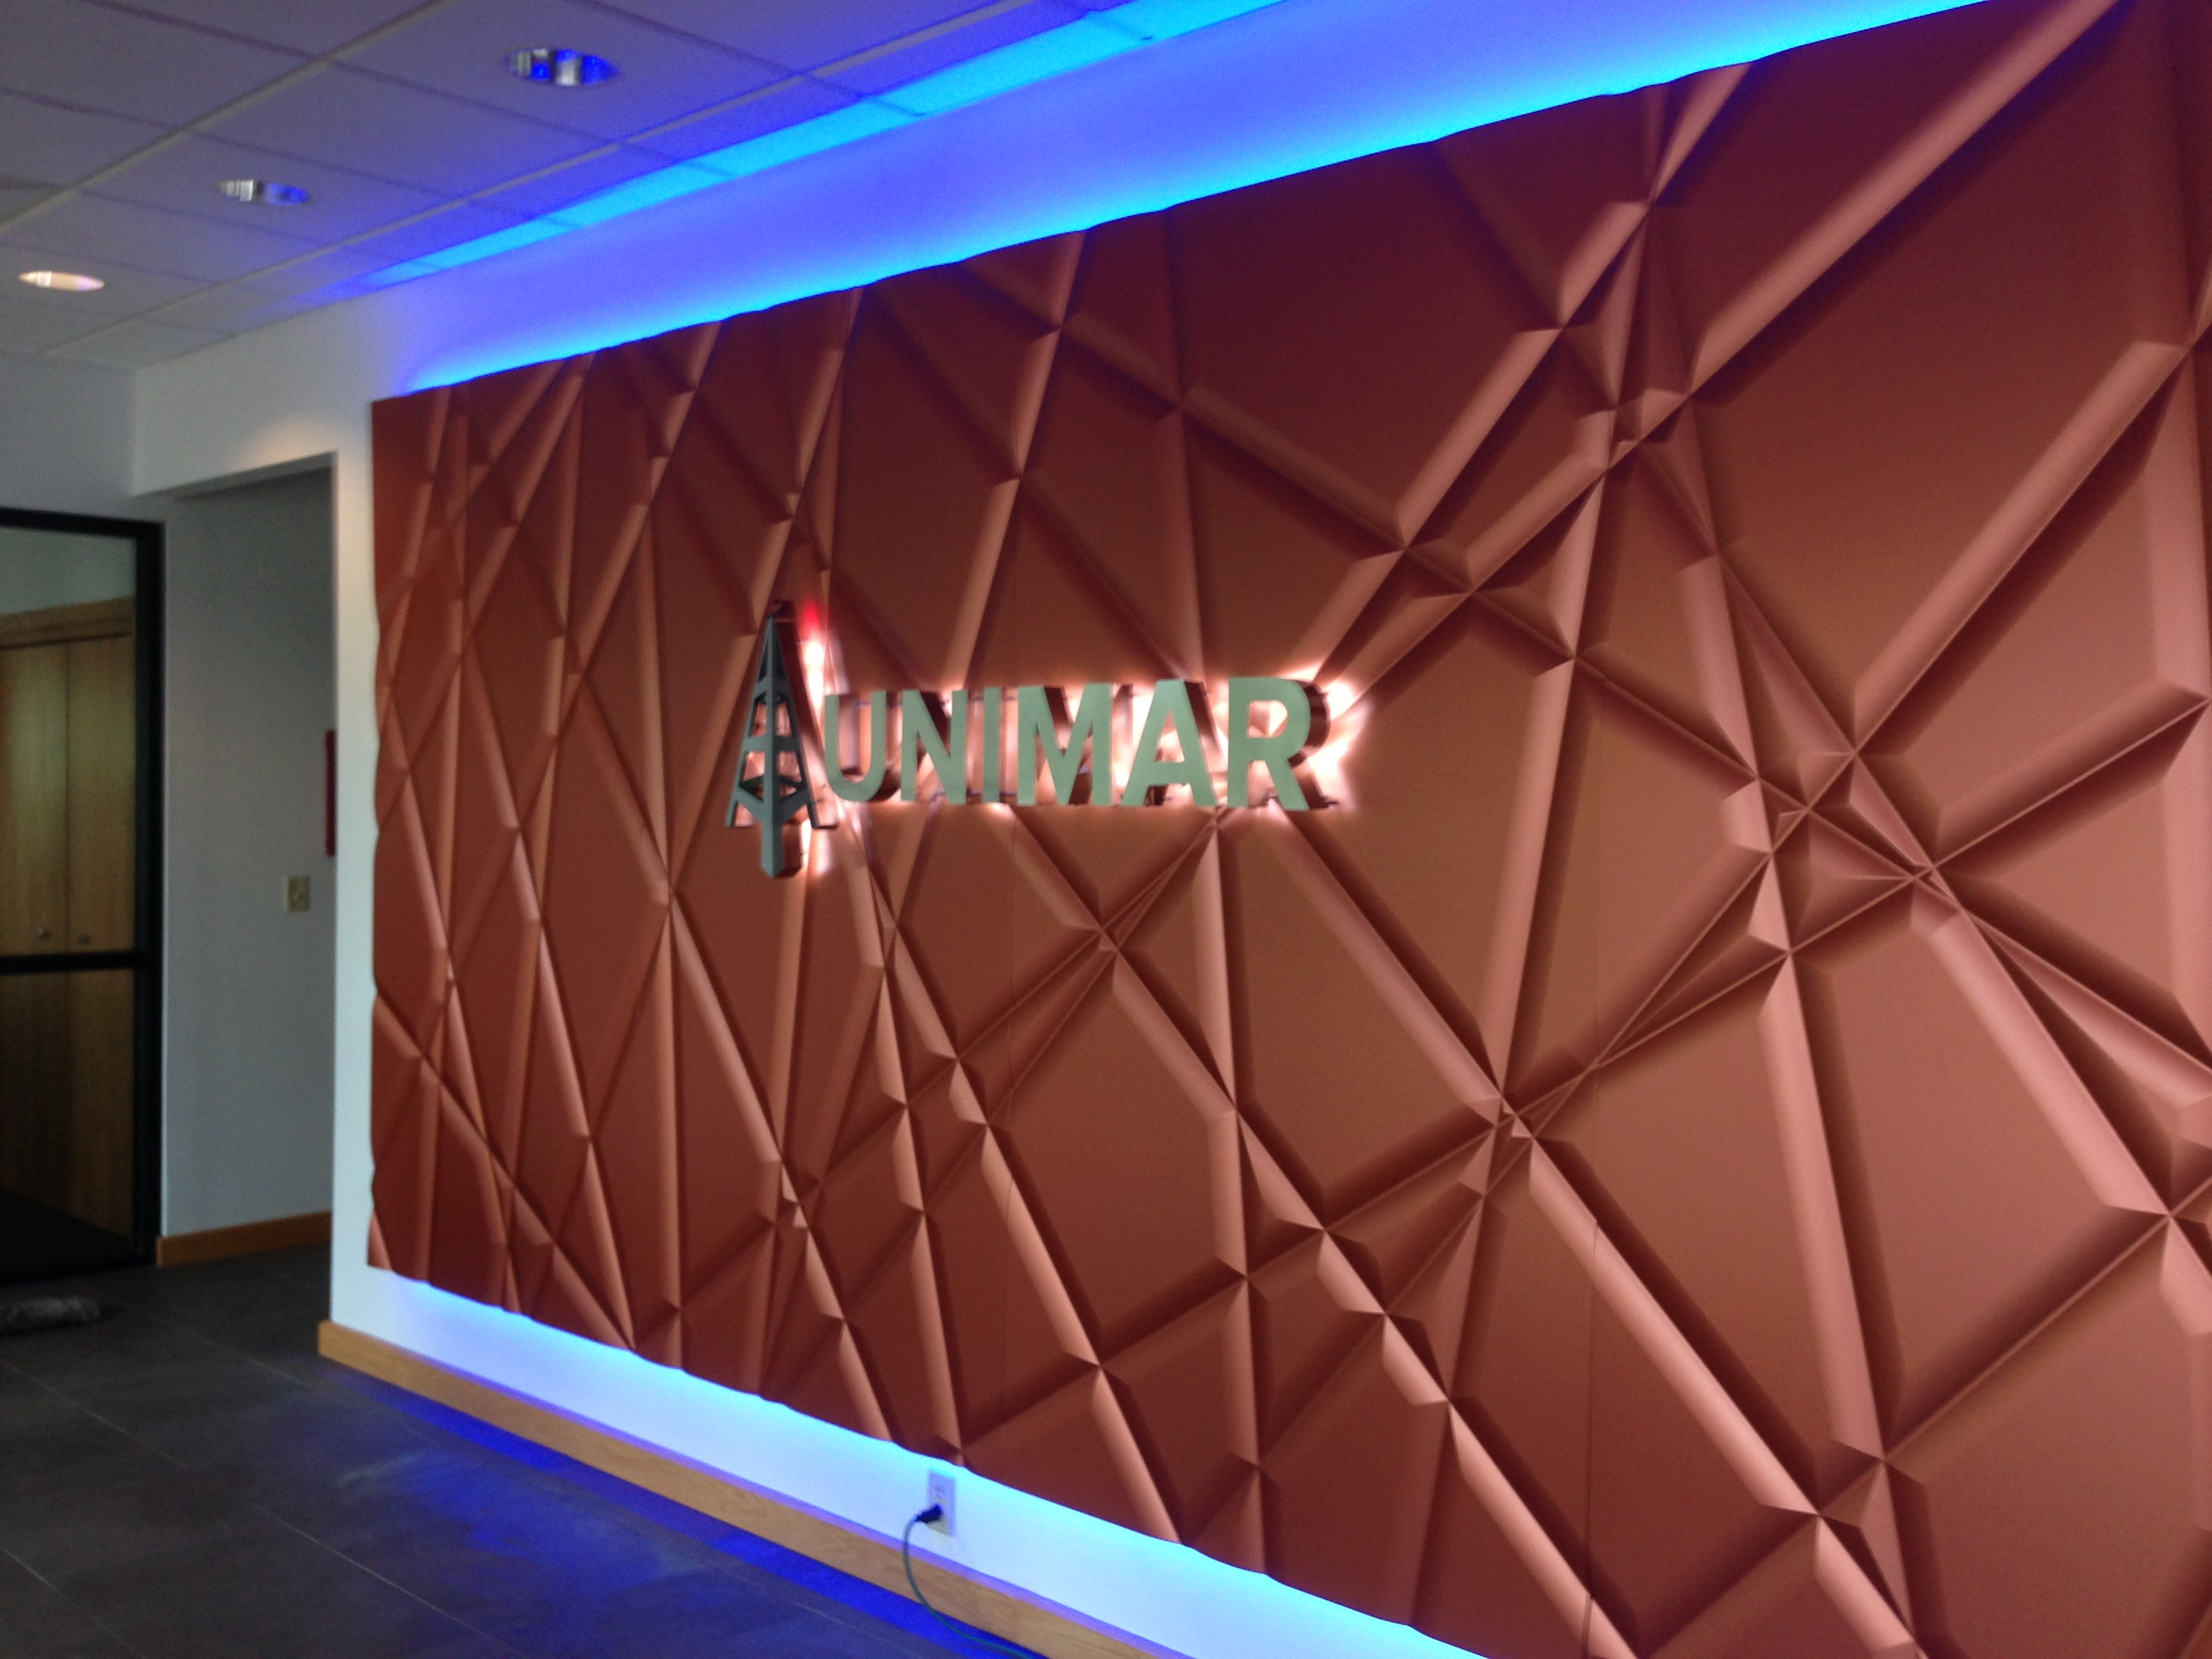 LED Illuminated, Syracuse NY Back lit sign, Syracuse NY, Custom signs, Syracuse NY :: Unimar - LED Illuminated back lit custom sign :: Syracuse NY, Central NY, Upstate NY